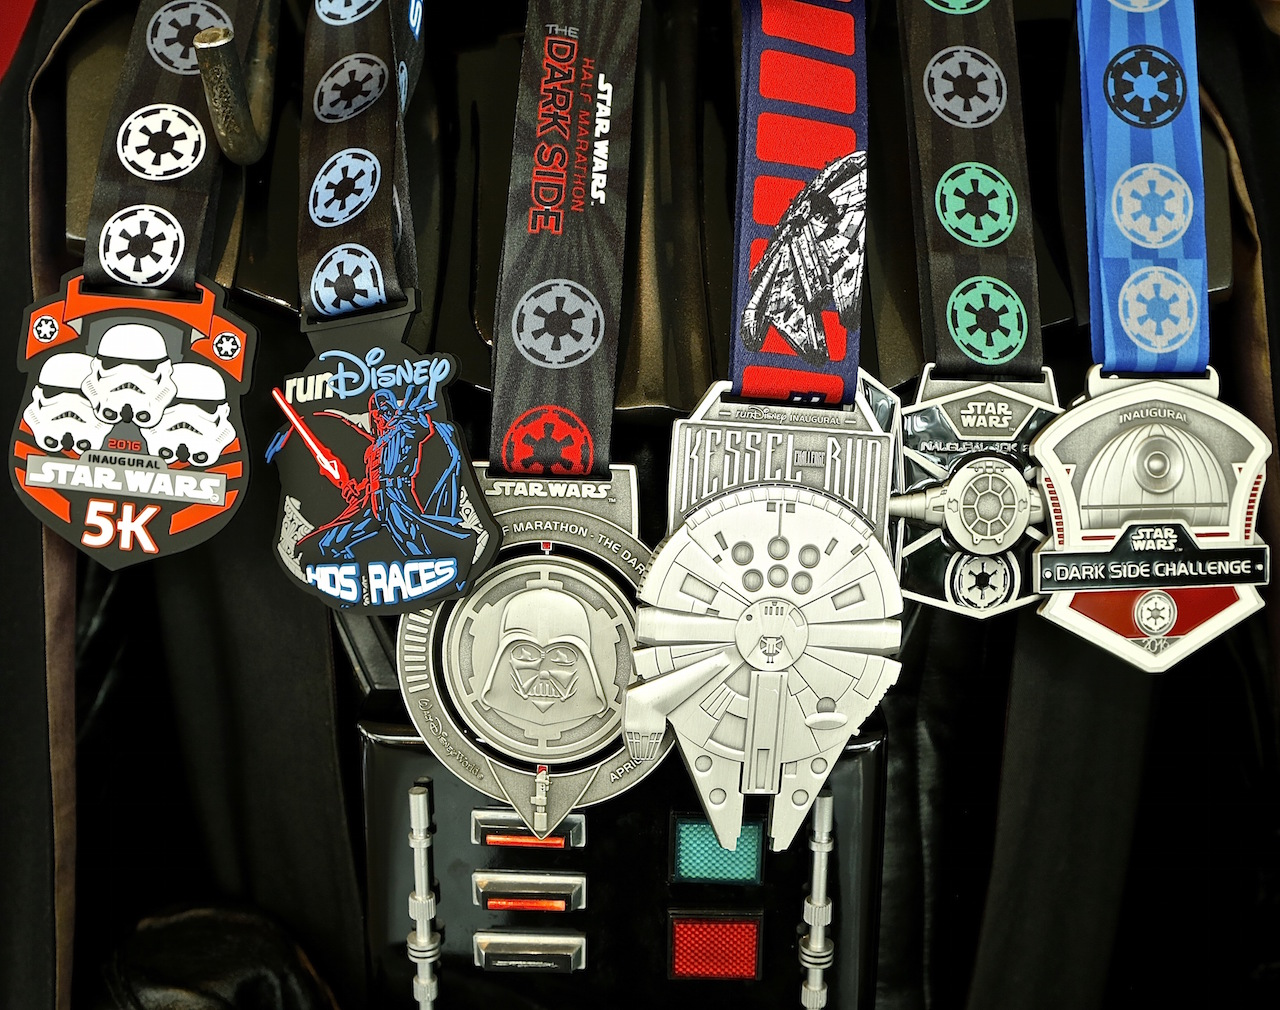 rundisney star wars medals are most impressive